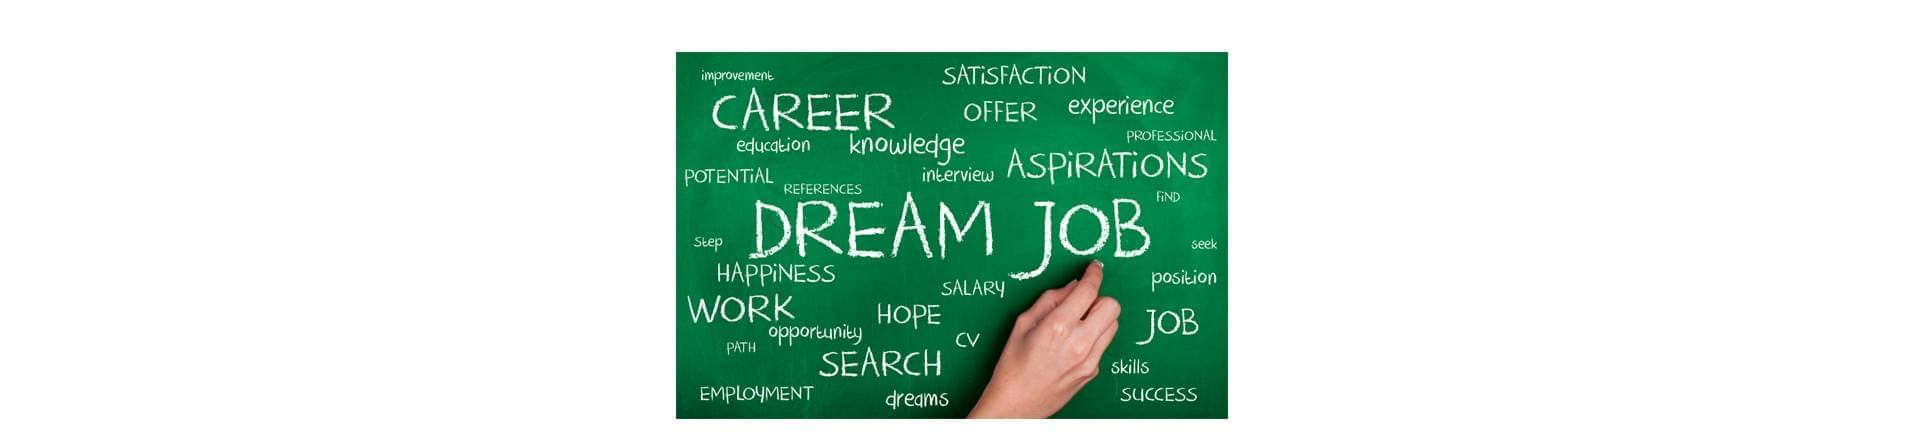 board with the word 'Dream Job' on it and a number of other words associated with job search and careers.